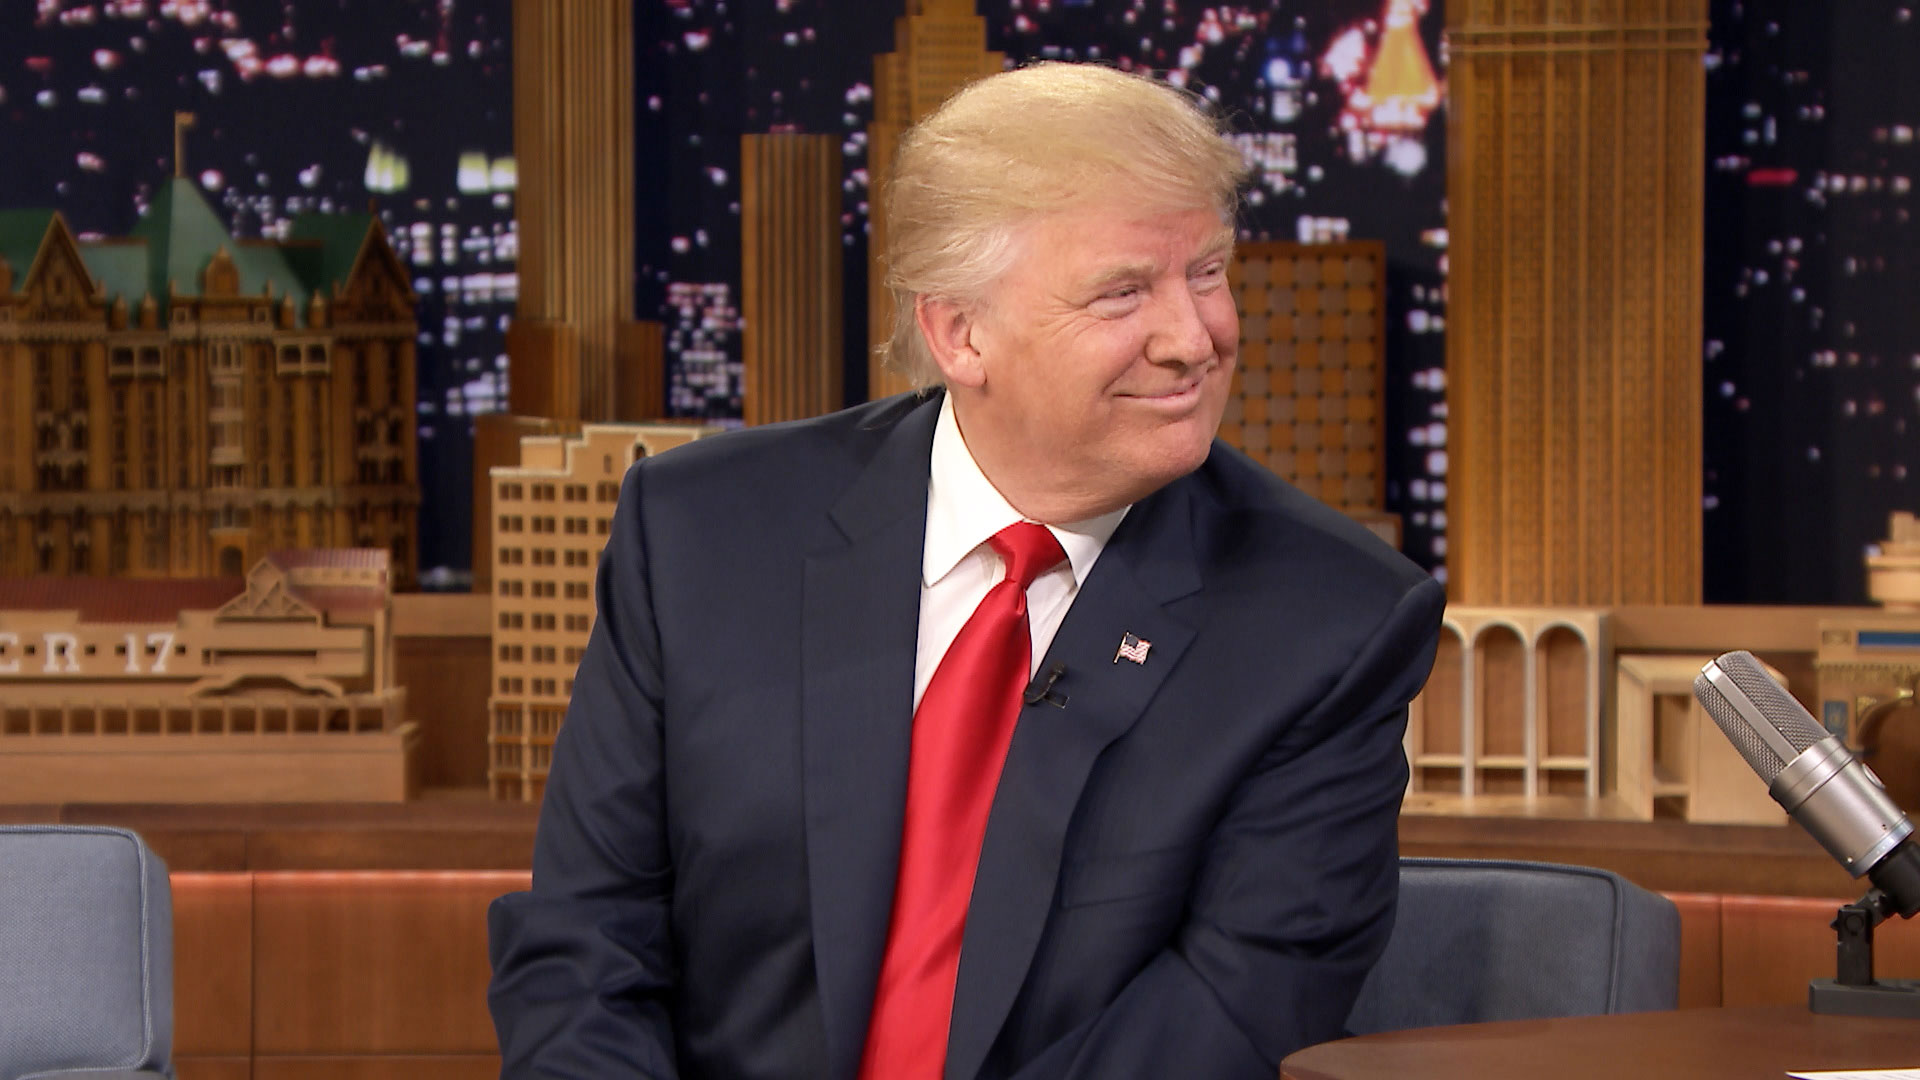 Donald Trump on Board Games, His Health and Fast Food Habit - The ...